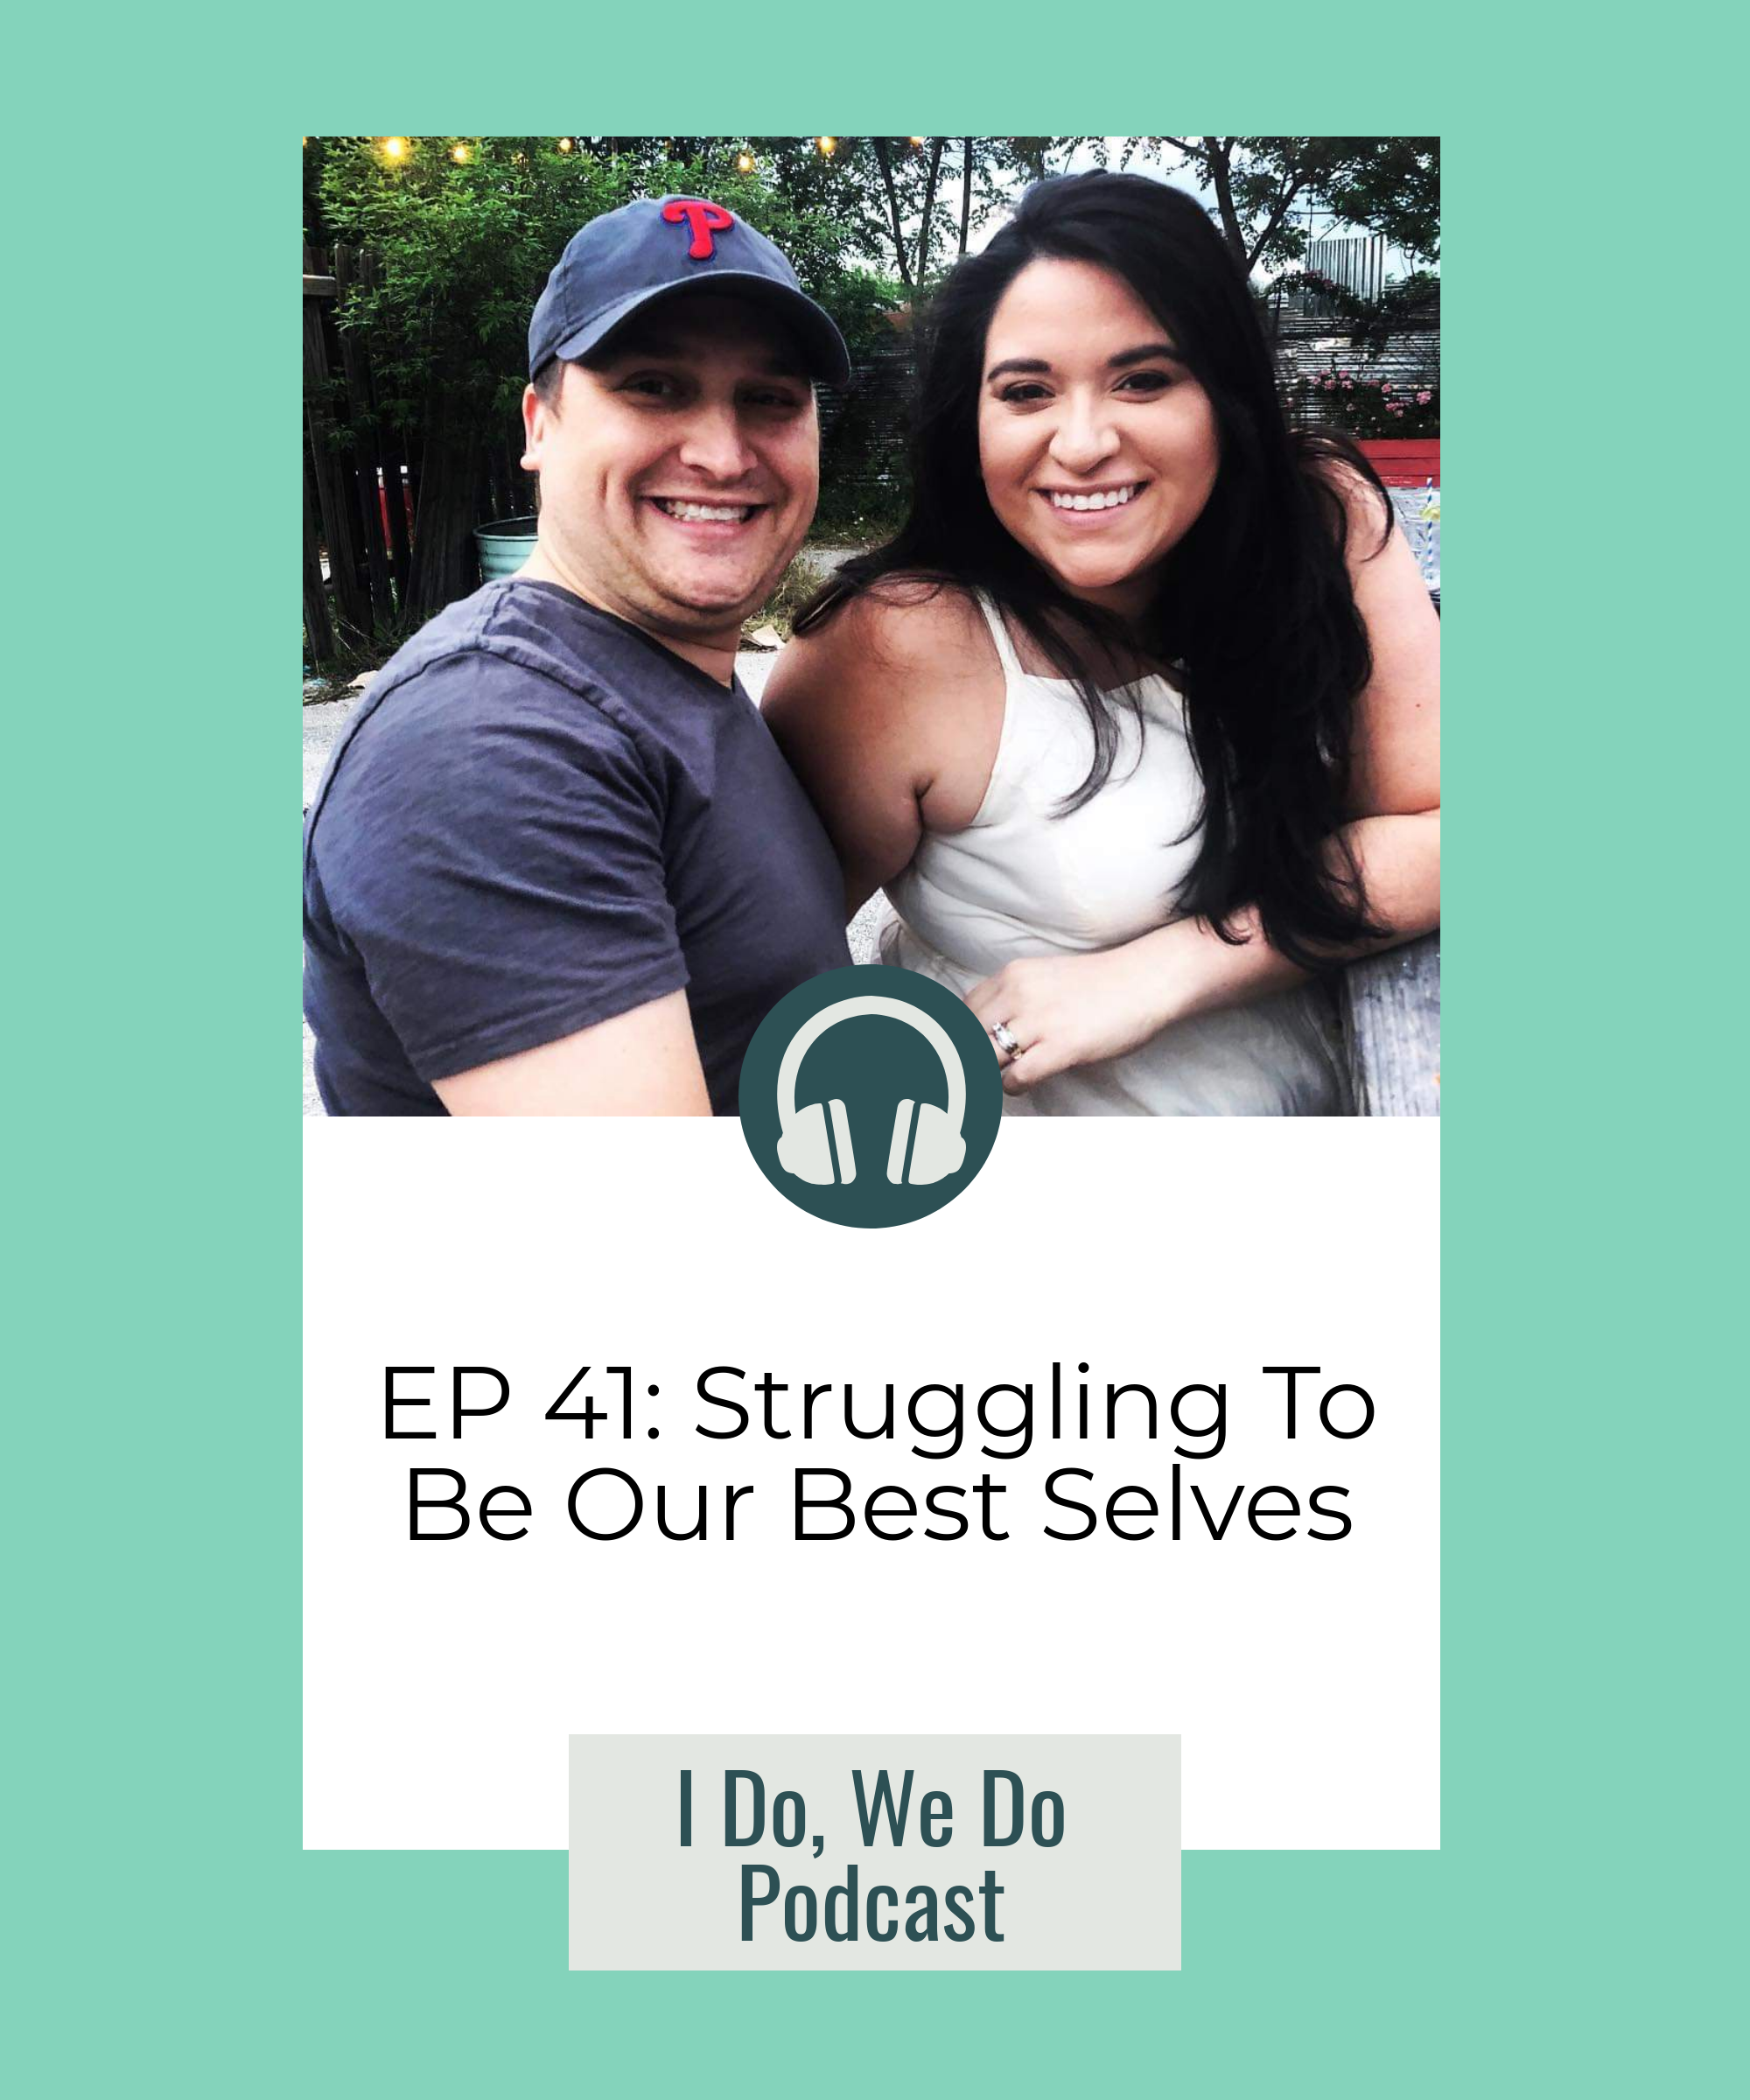 EP 41 - Best Selves